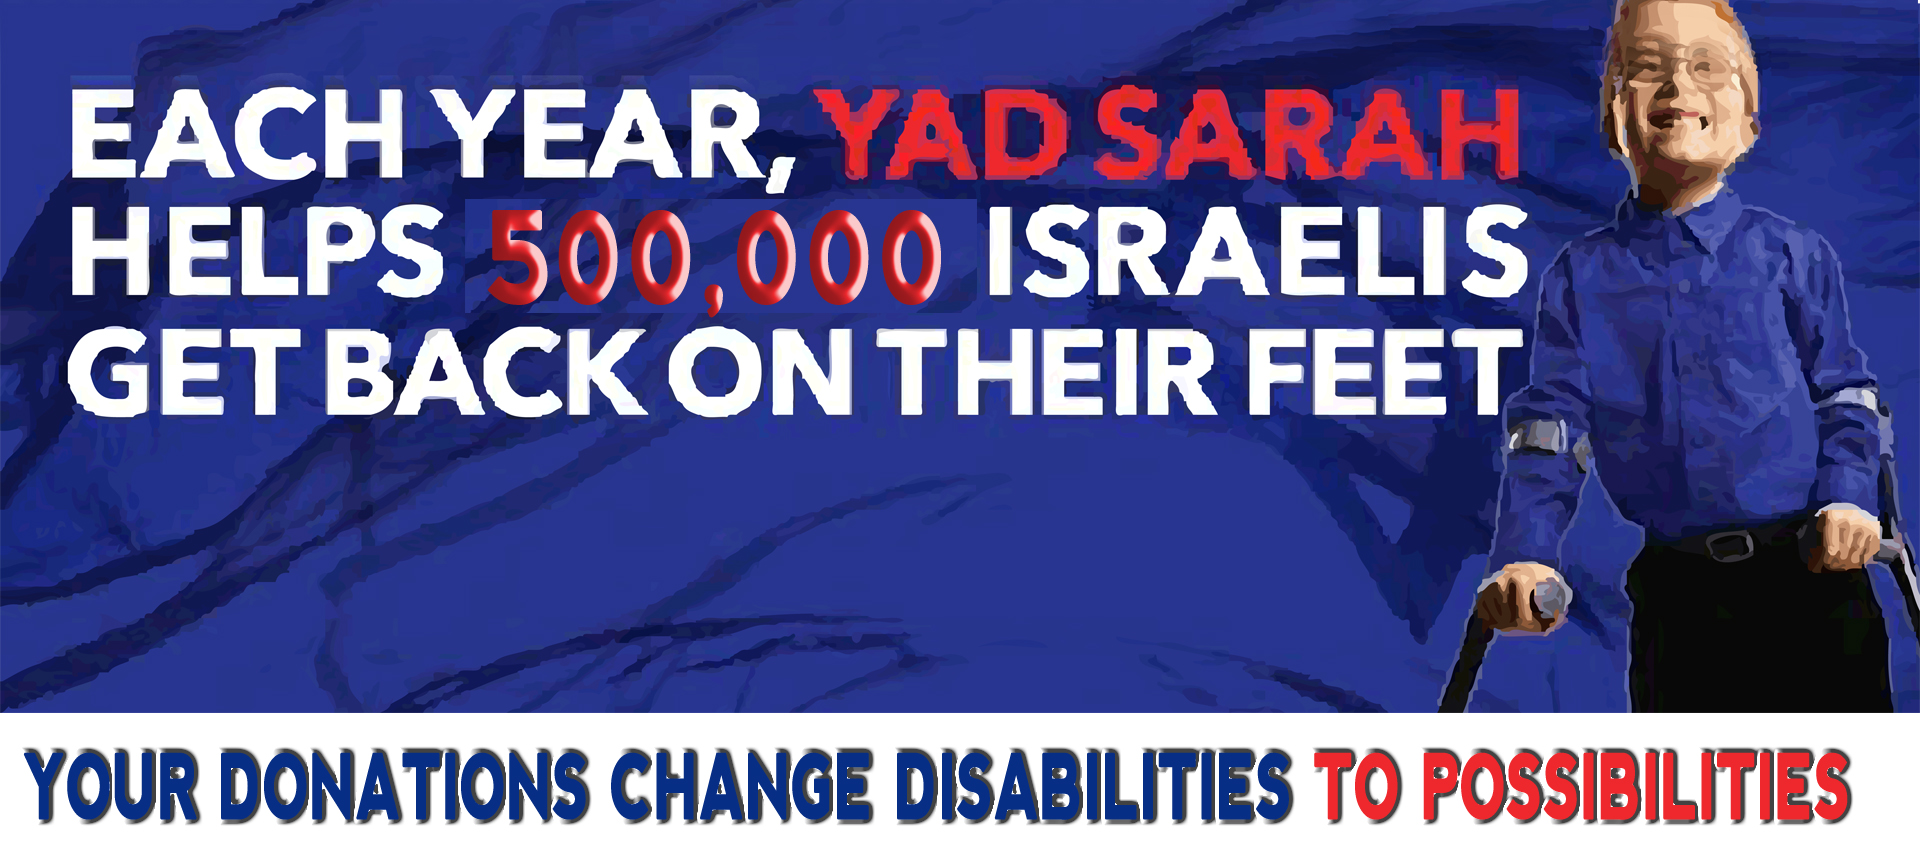 A little blond boy with glasses stands using the aid of crutches. The sign reads, Each Year, Yad Sarah helps 500,000 Israelis get back on their feet